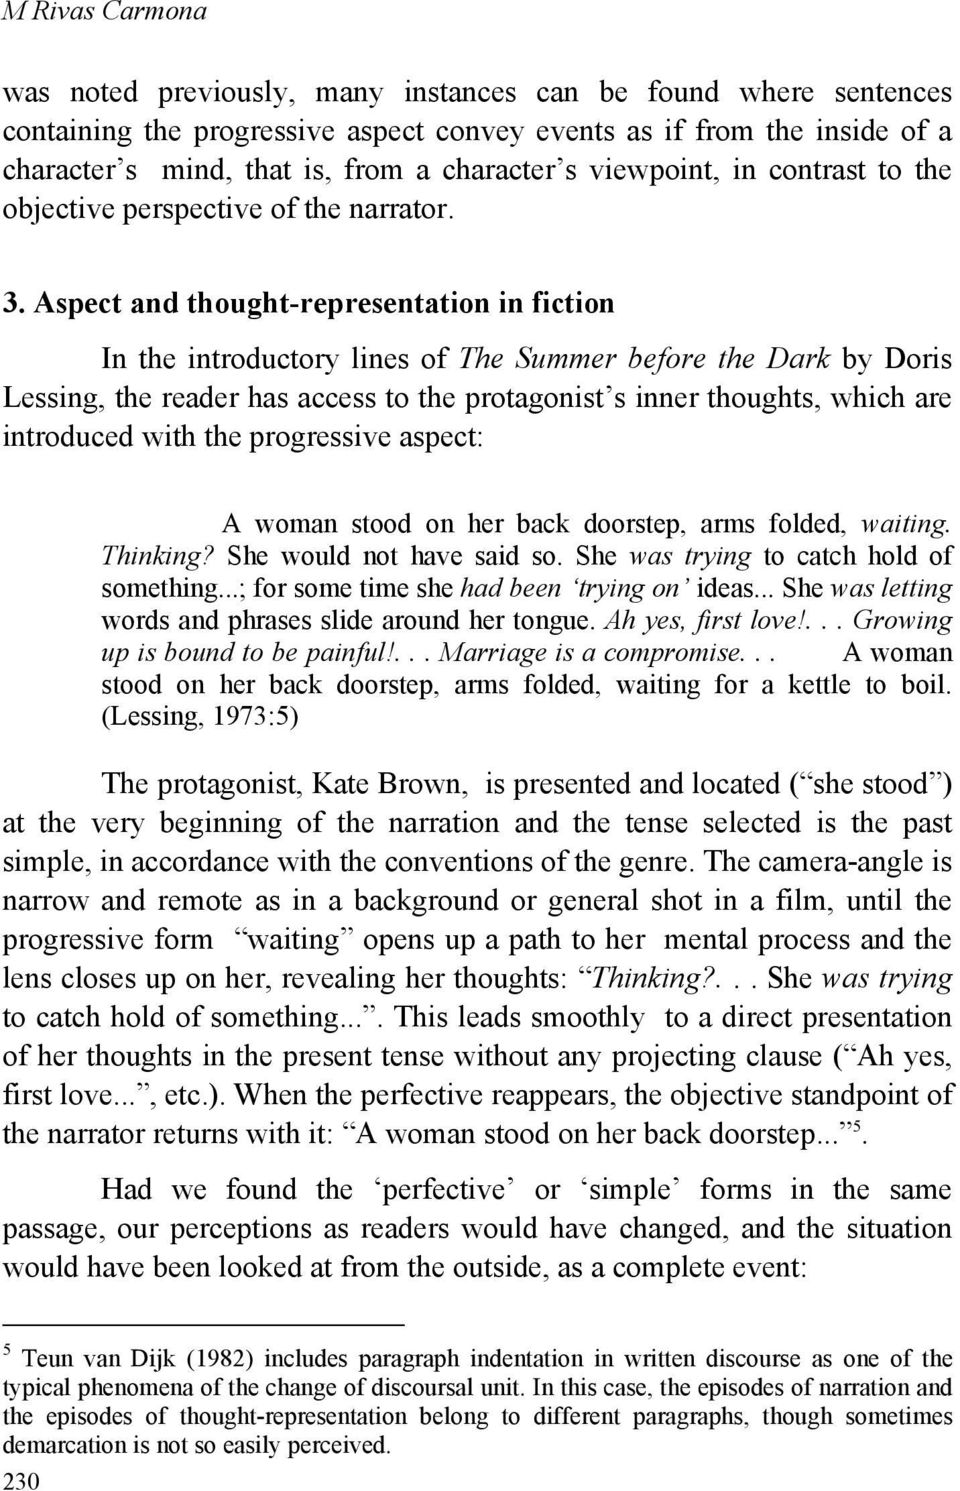 Aspect and thought-representation in fiction In the introductory lines of The Summer before the Dark by Doris Lessing, the reader has access to the protagonist s inner thoughts, which are introduced